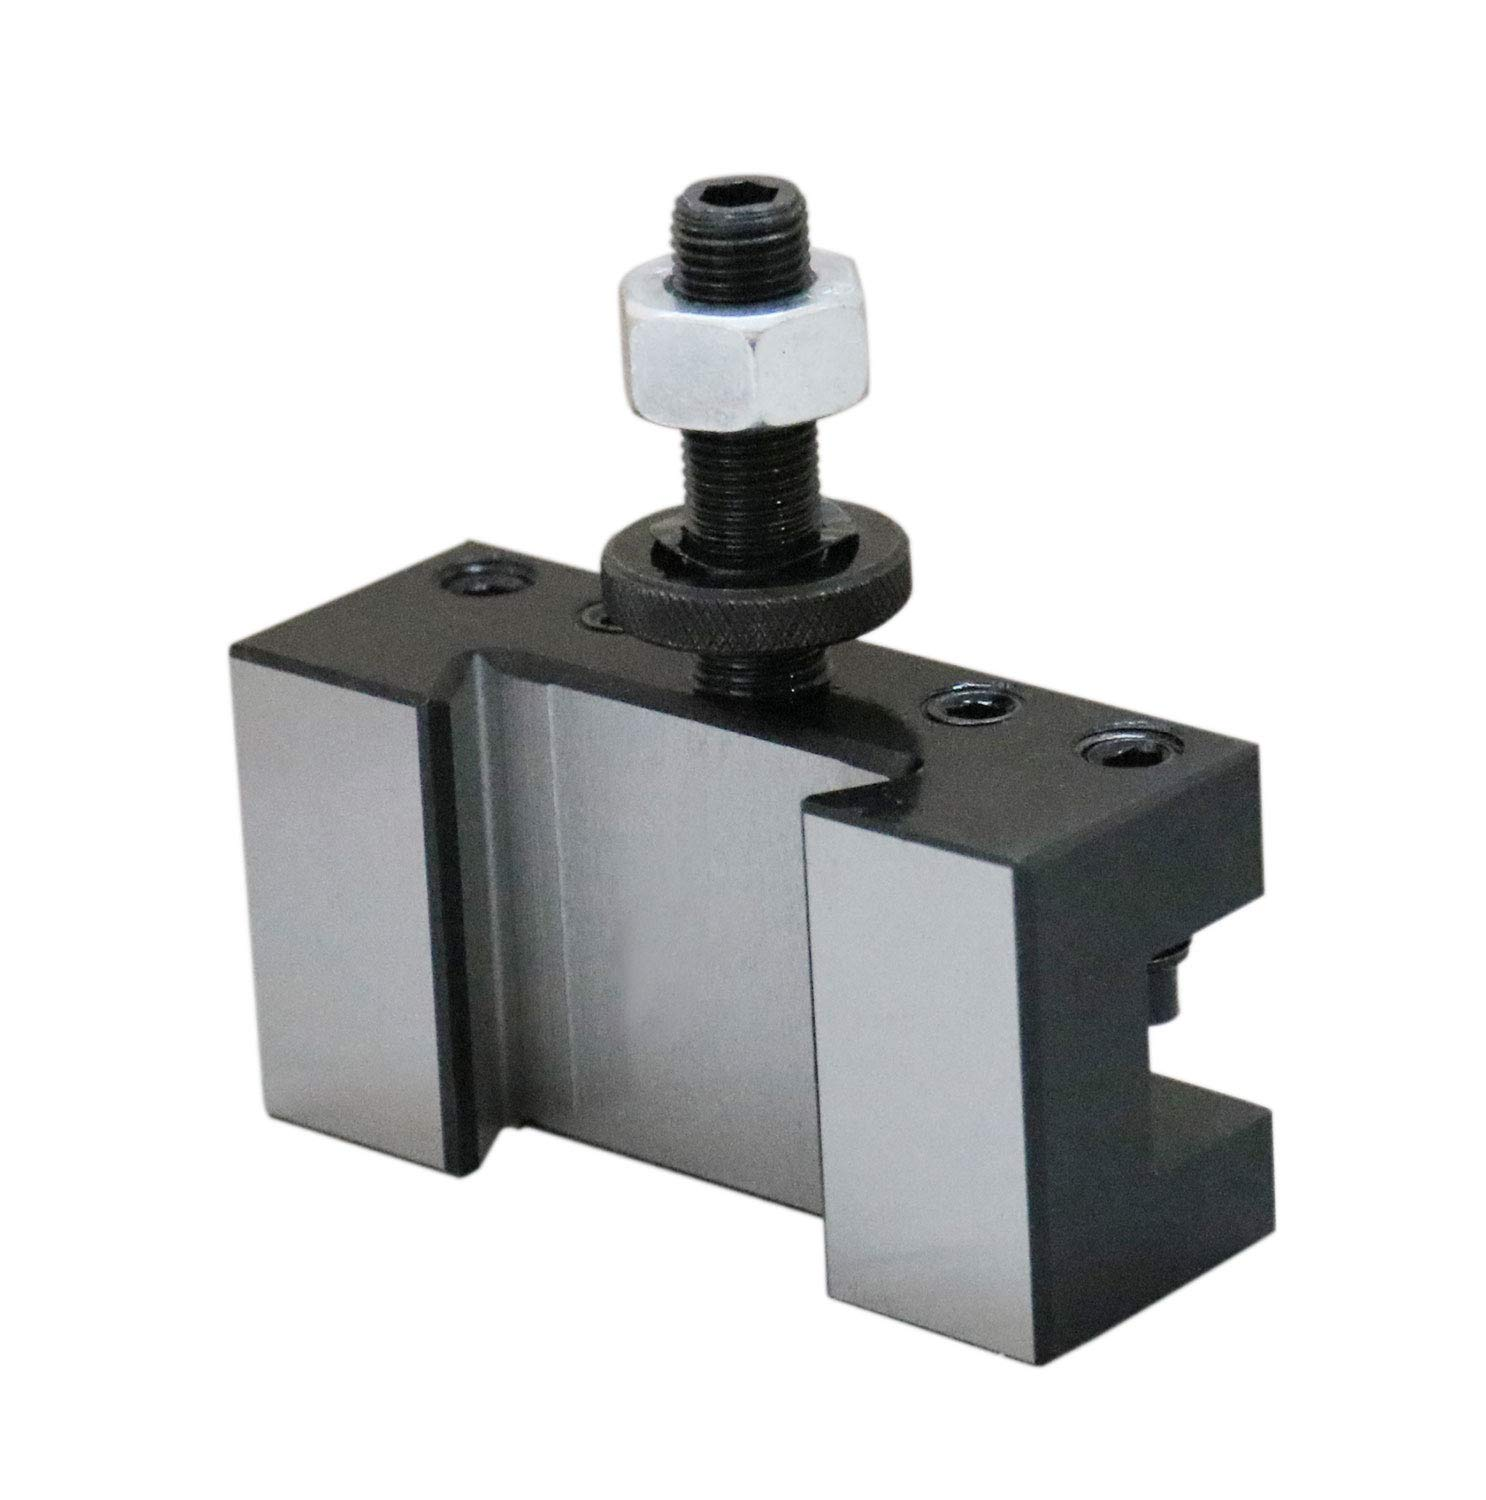 0250-0301 CXA Turing and Facing Holder Style No 1 Working with 3//4 Turning Tools Quick Change Tool Holder Accusize Tools